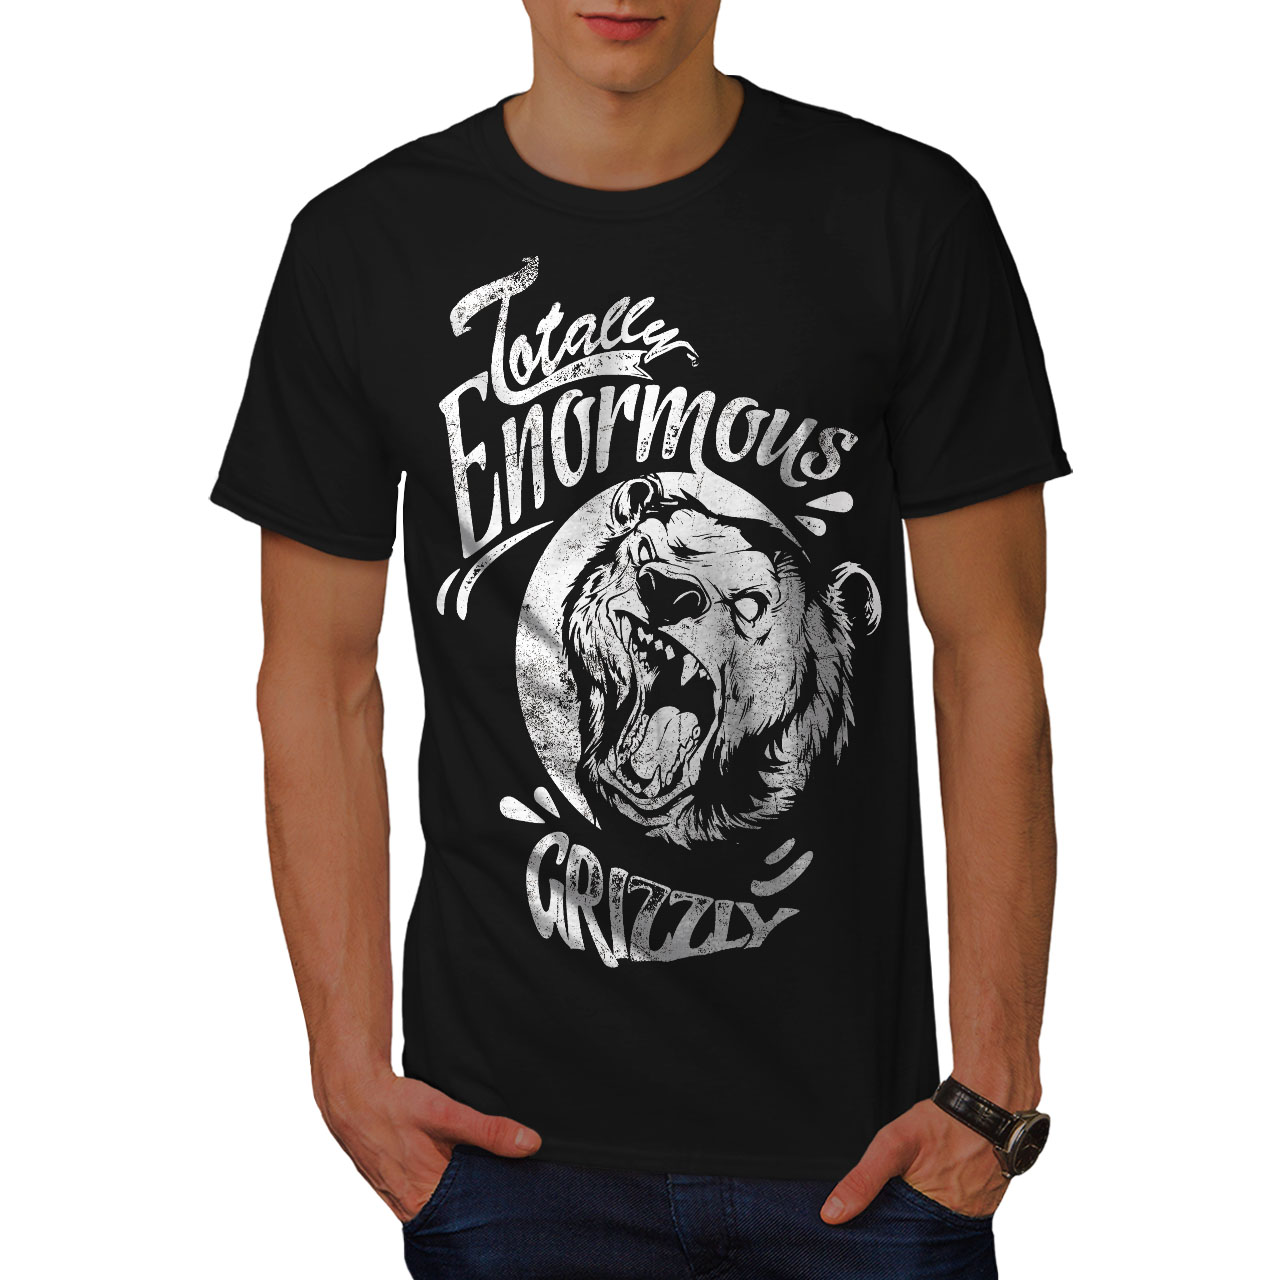 miniature 3 - Wellcoda Enormous Grizzly Bear Mens T-shirt, Totally Graphic Design Printed Tee